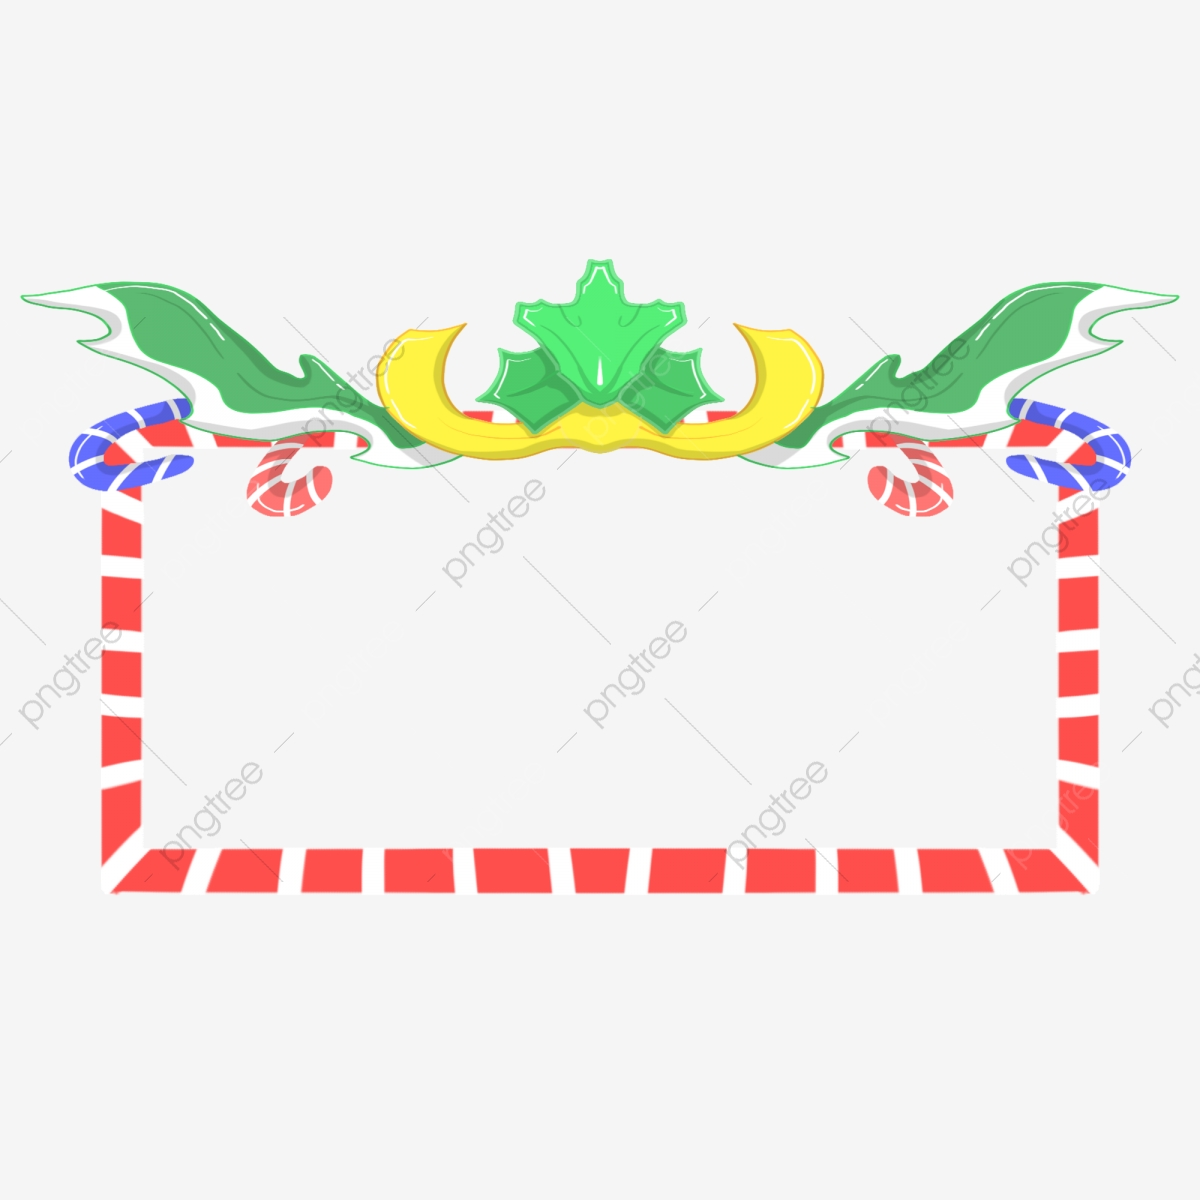 hight resolution of commercial use resource upgrade to premium plan and get license authorization upgradenow christmas border candy cane